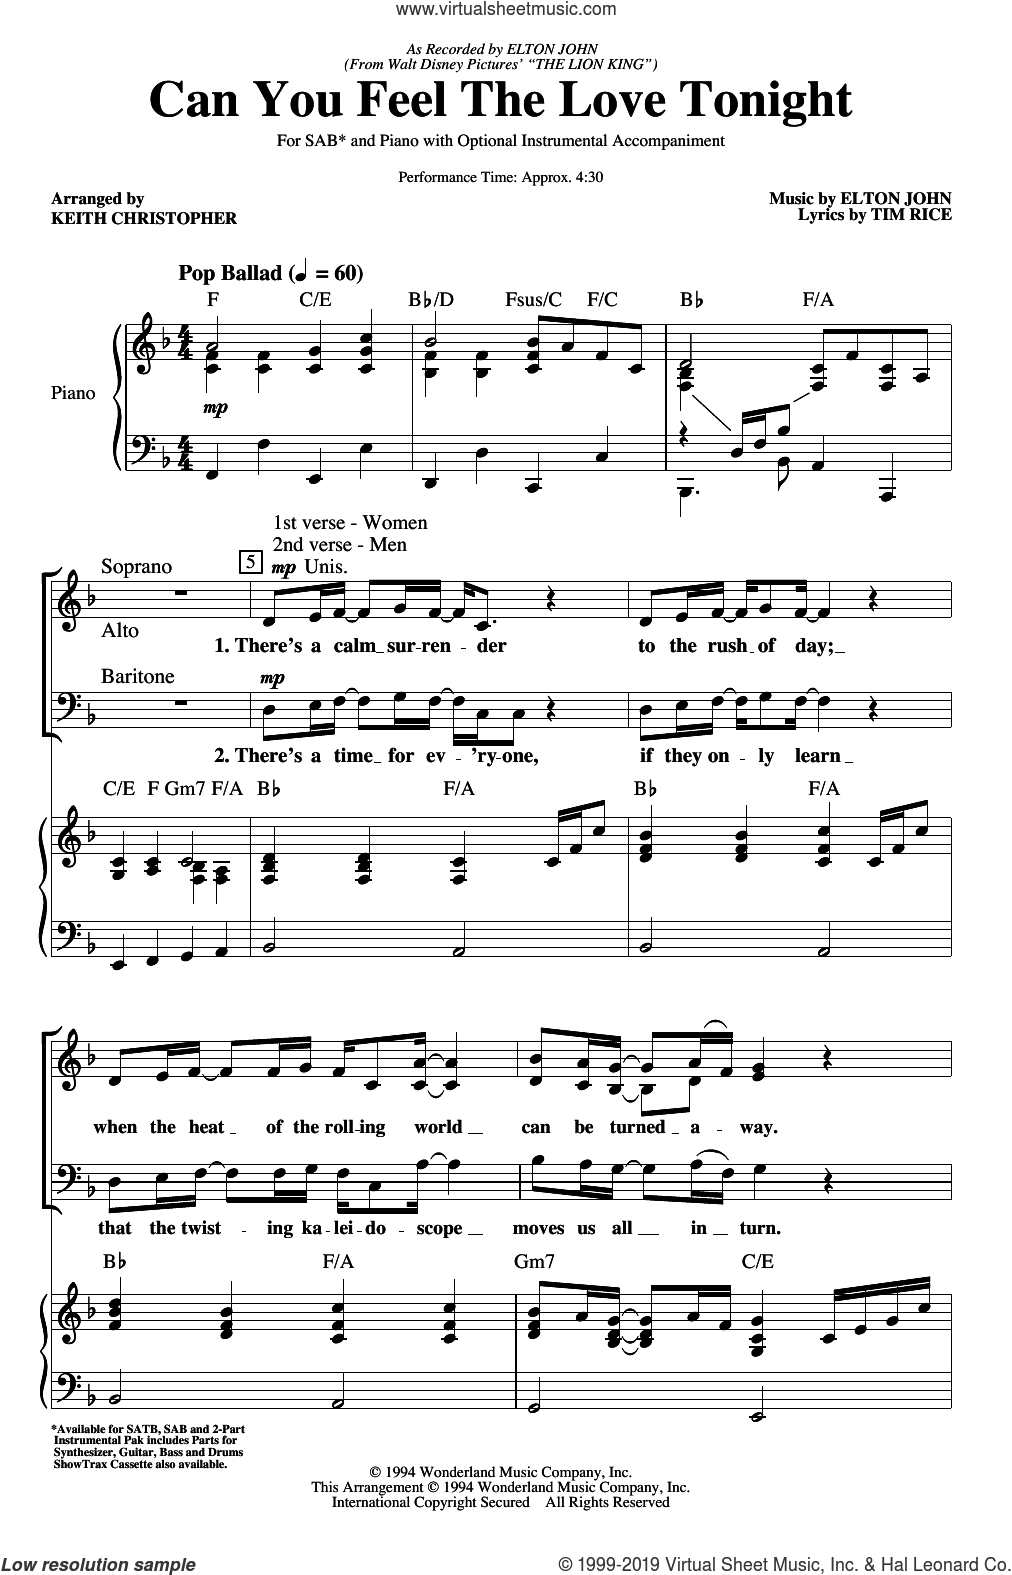 Can You Feel The Love Tonight (from The Lion King) (arr. Keith Christopher) sheet music for choir (SAB: soprano, alto, bass) by Elton John, Keith Christopher and Tim Rice, intermediate skill level